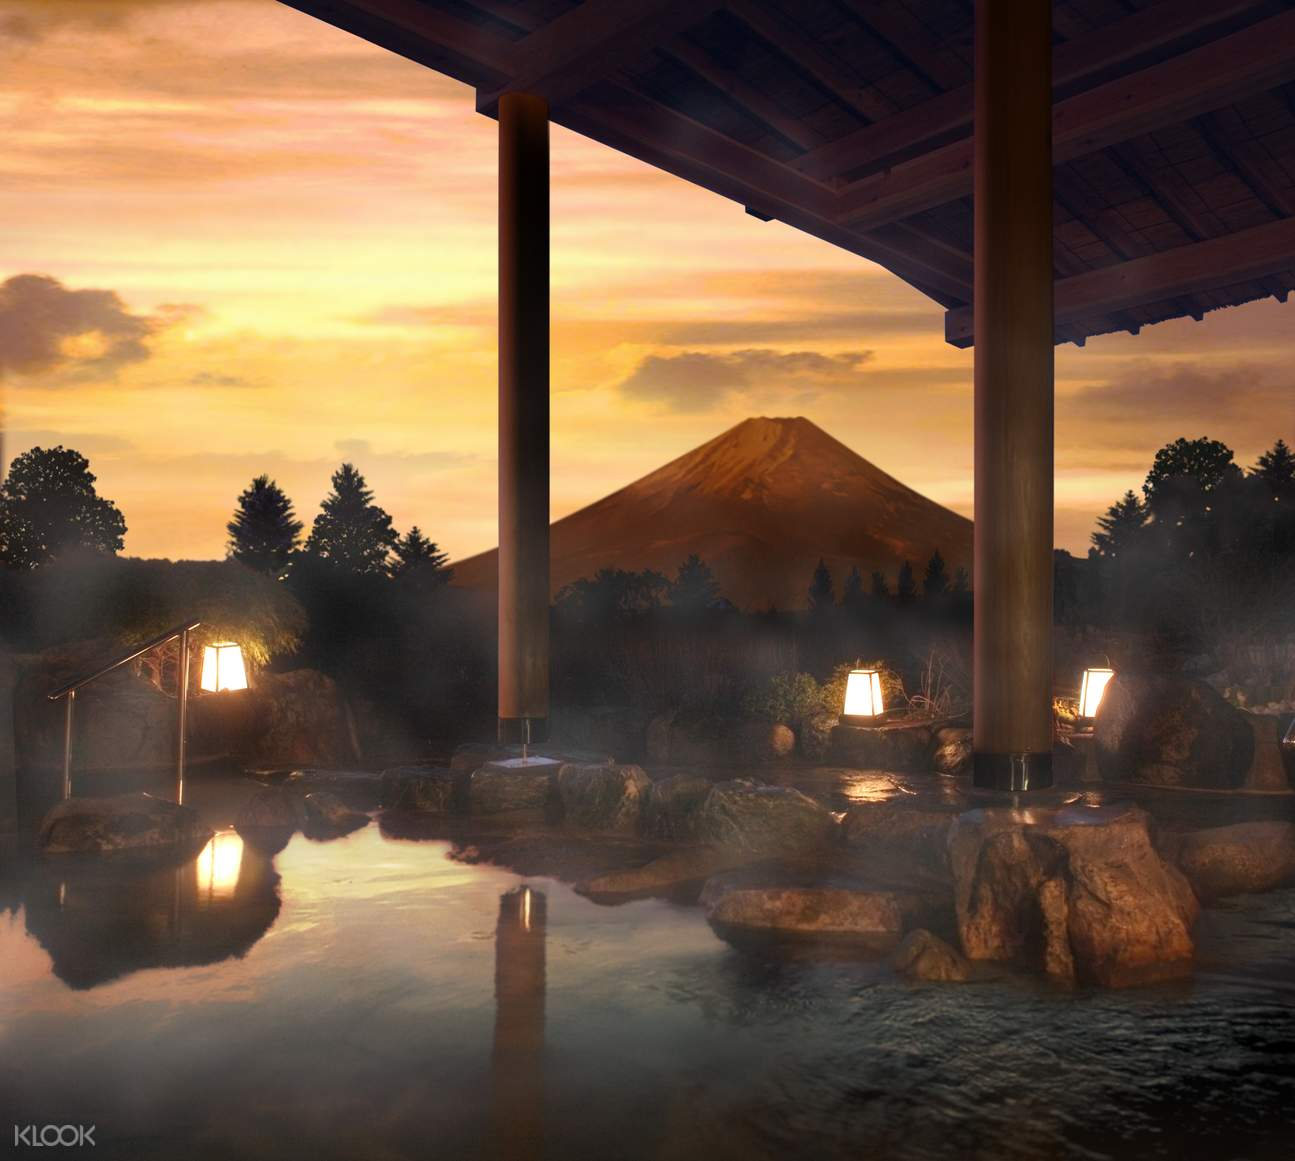 Enjoy the view of Mt. Fuji with open-air bath